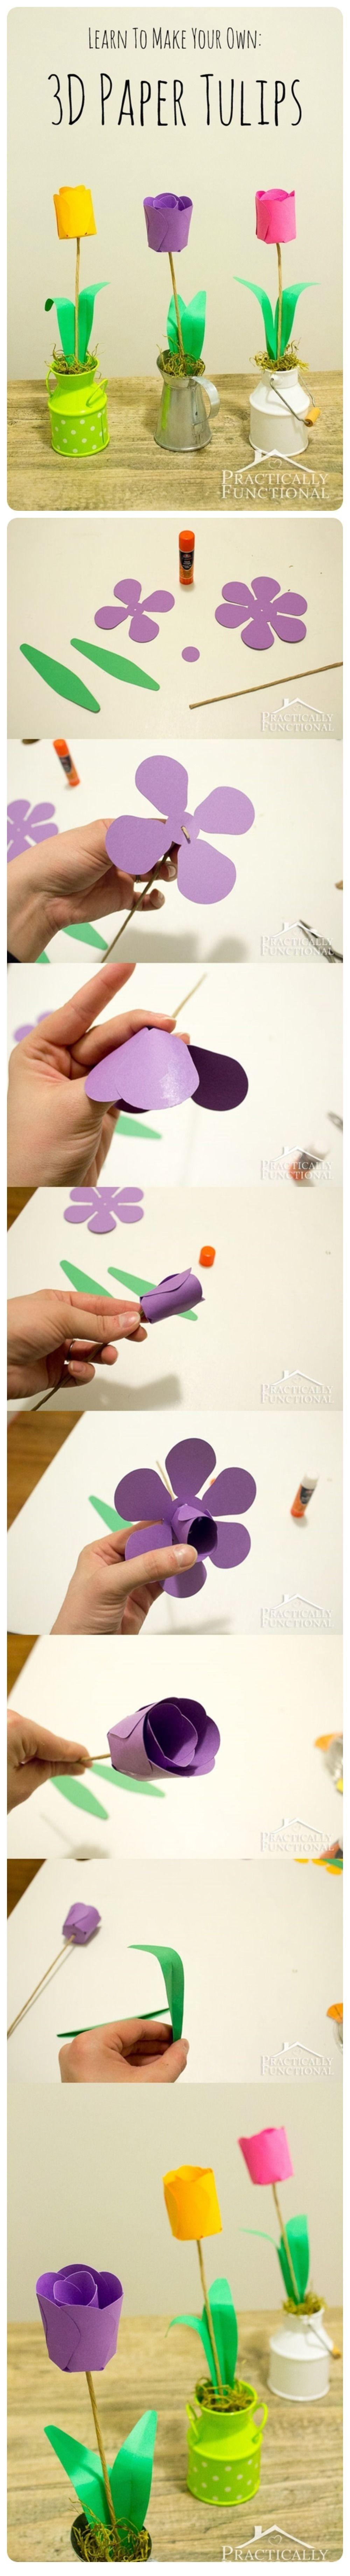 Diy Paper Tulips Photos